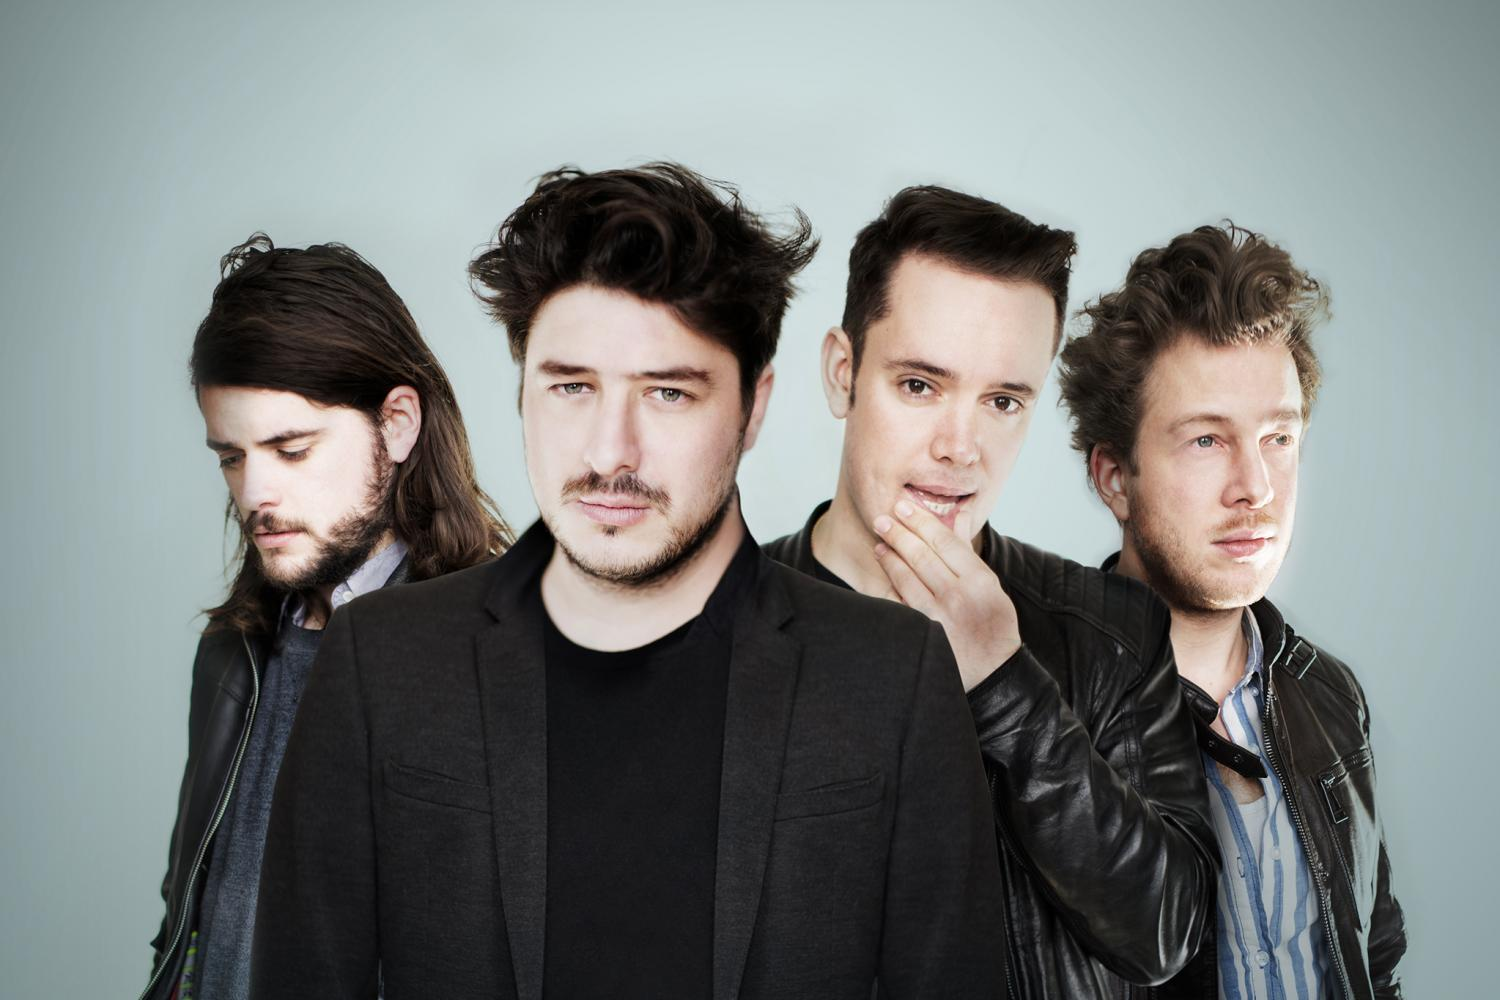 mumfordandsons_philsharp_diy_20150423_2047x1365_2